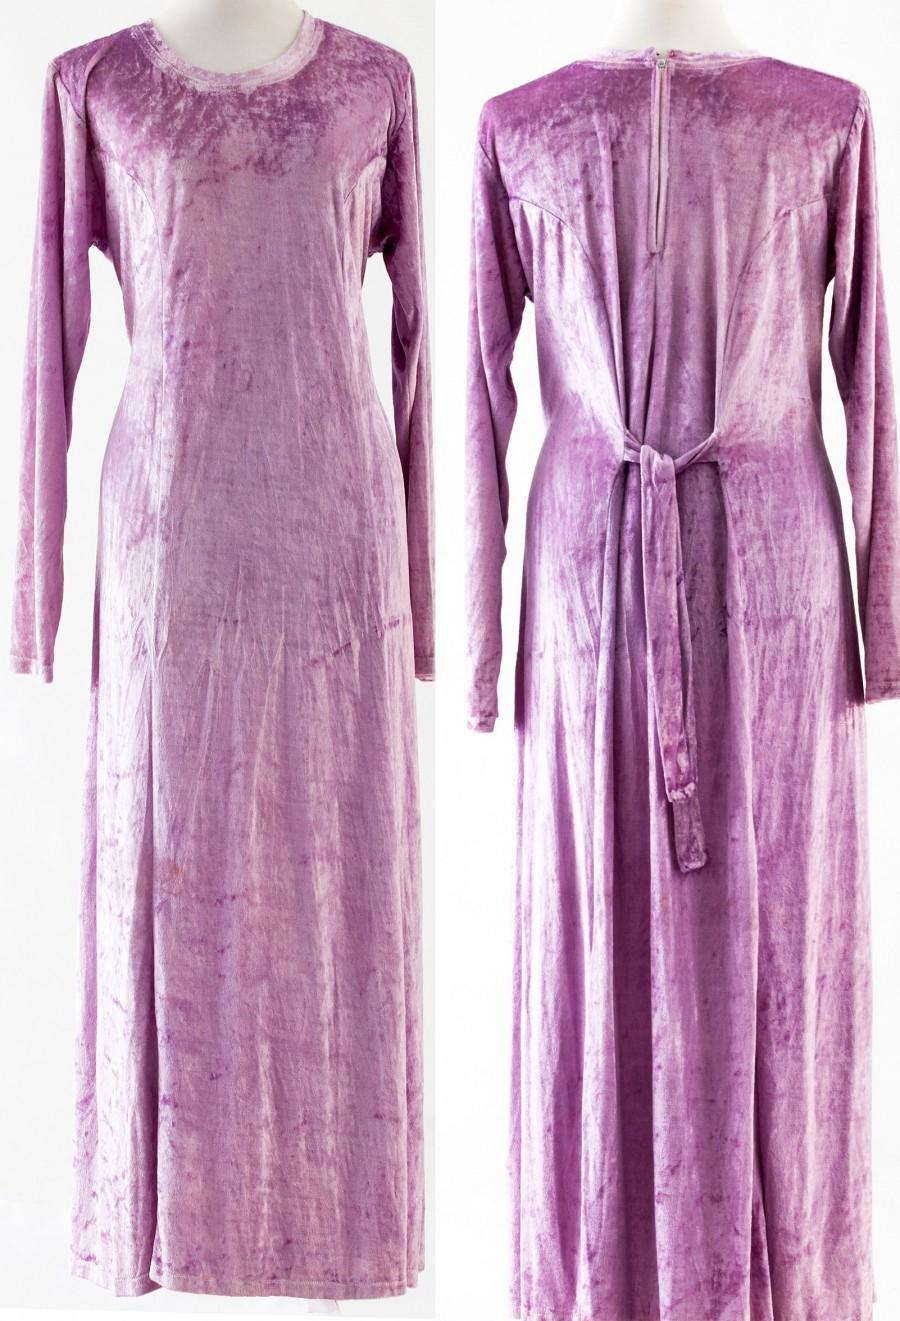 Mariage - Velvet Silk Dress, Incredible Dress, 1980s Vintage Dress, Fashionable Dress, Lavander Maxi Dress, Elegant Long Sleeves, Women's Velvet Dress